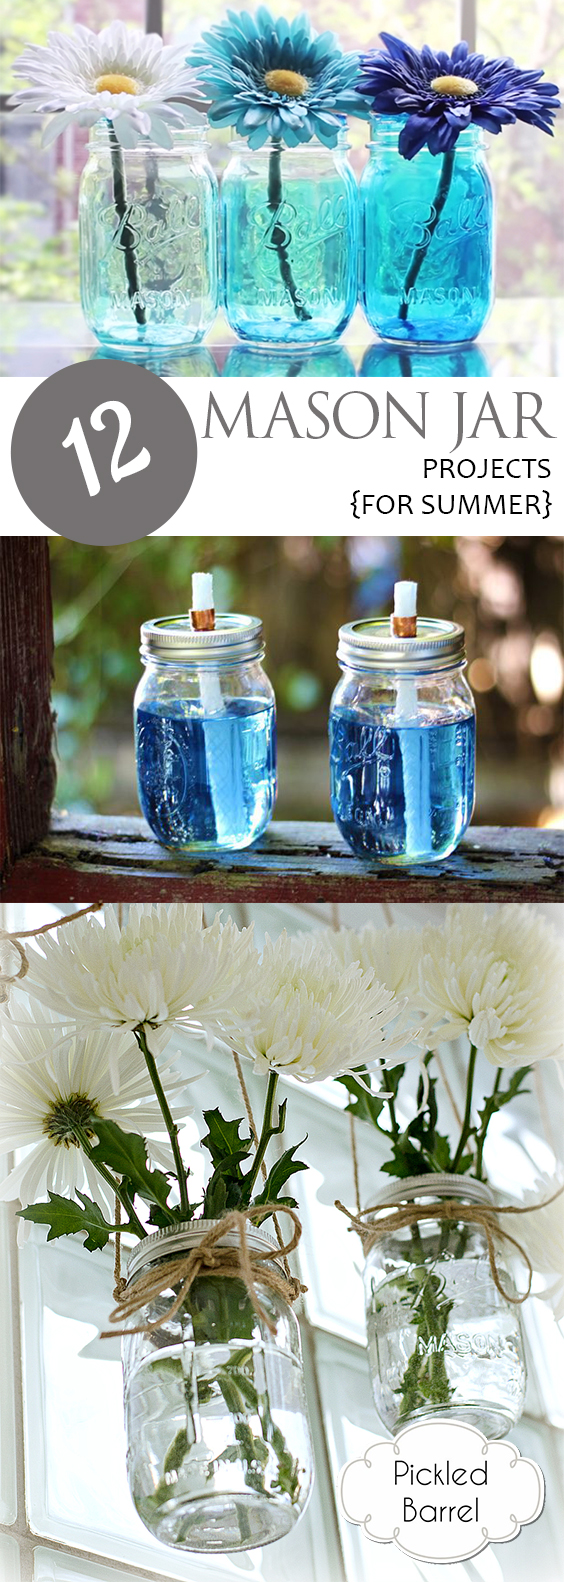 12 Mason Jar Projects For Summer Pickled Barrel